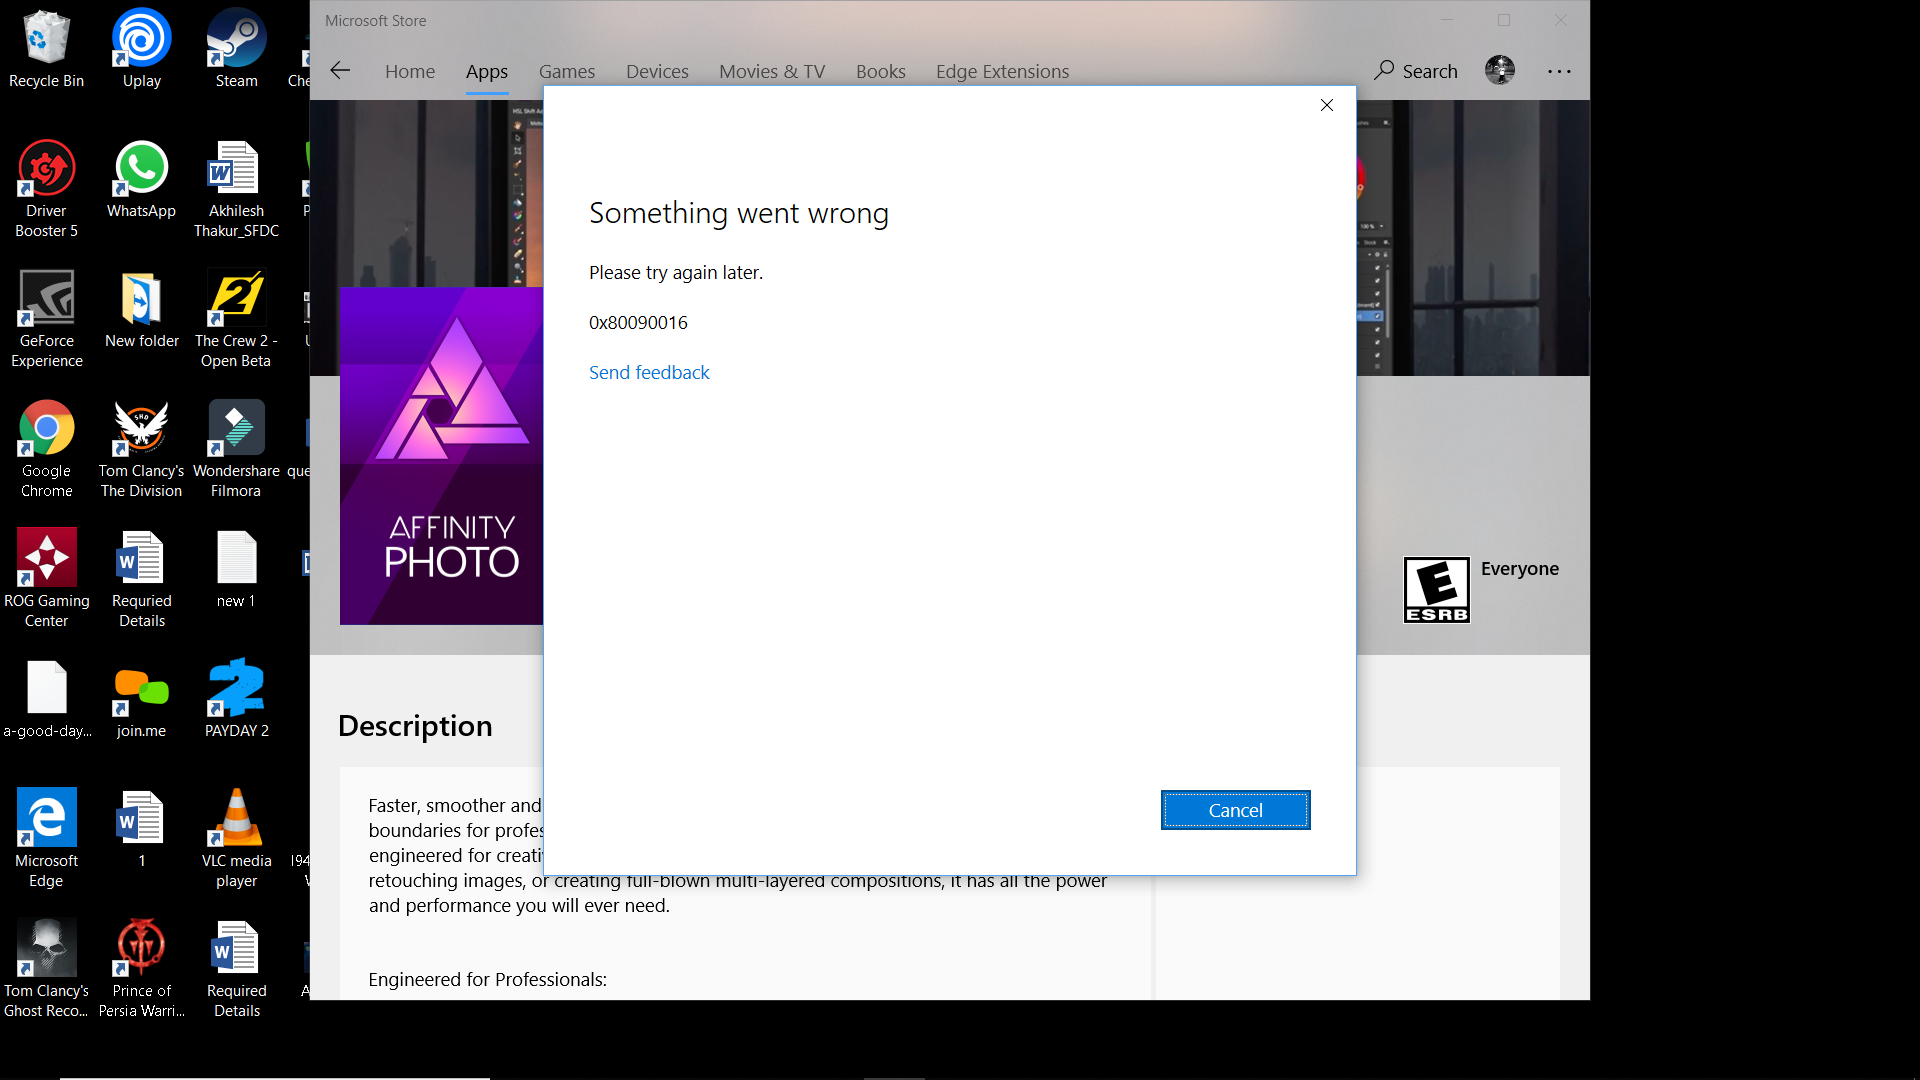 Unable to purchase apps in microsoft store, - Microsoft